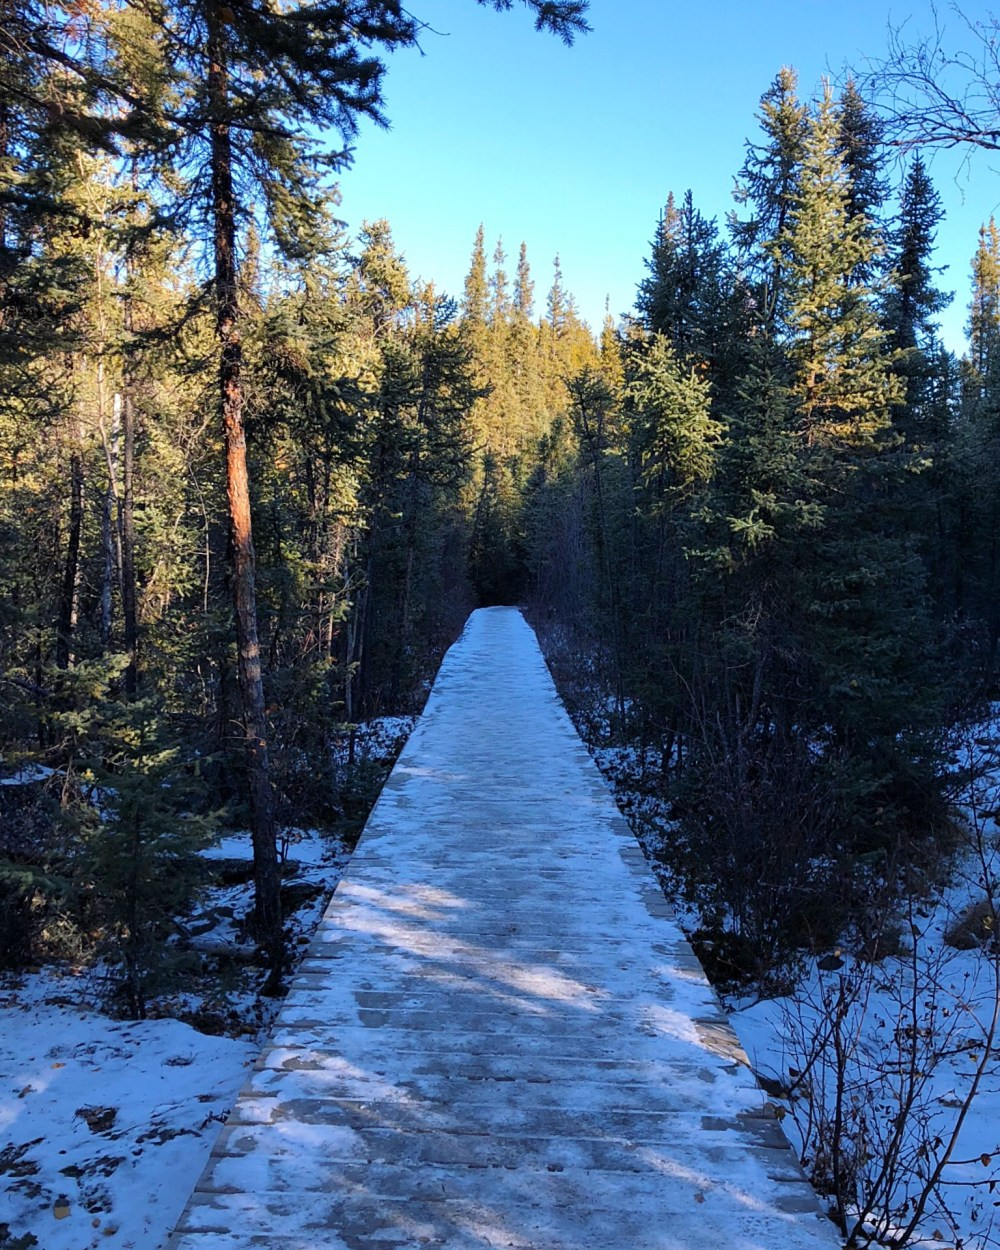 yellowknife ingraham trail - 1